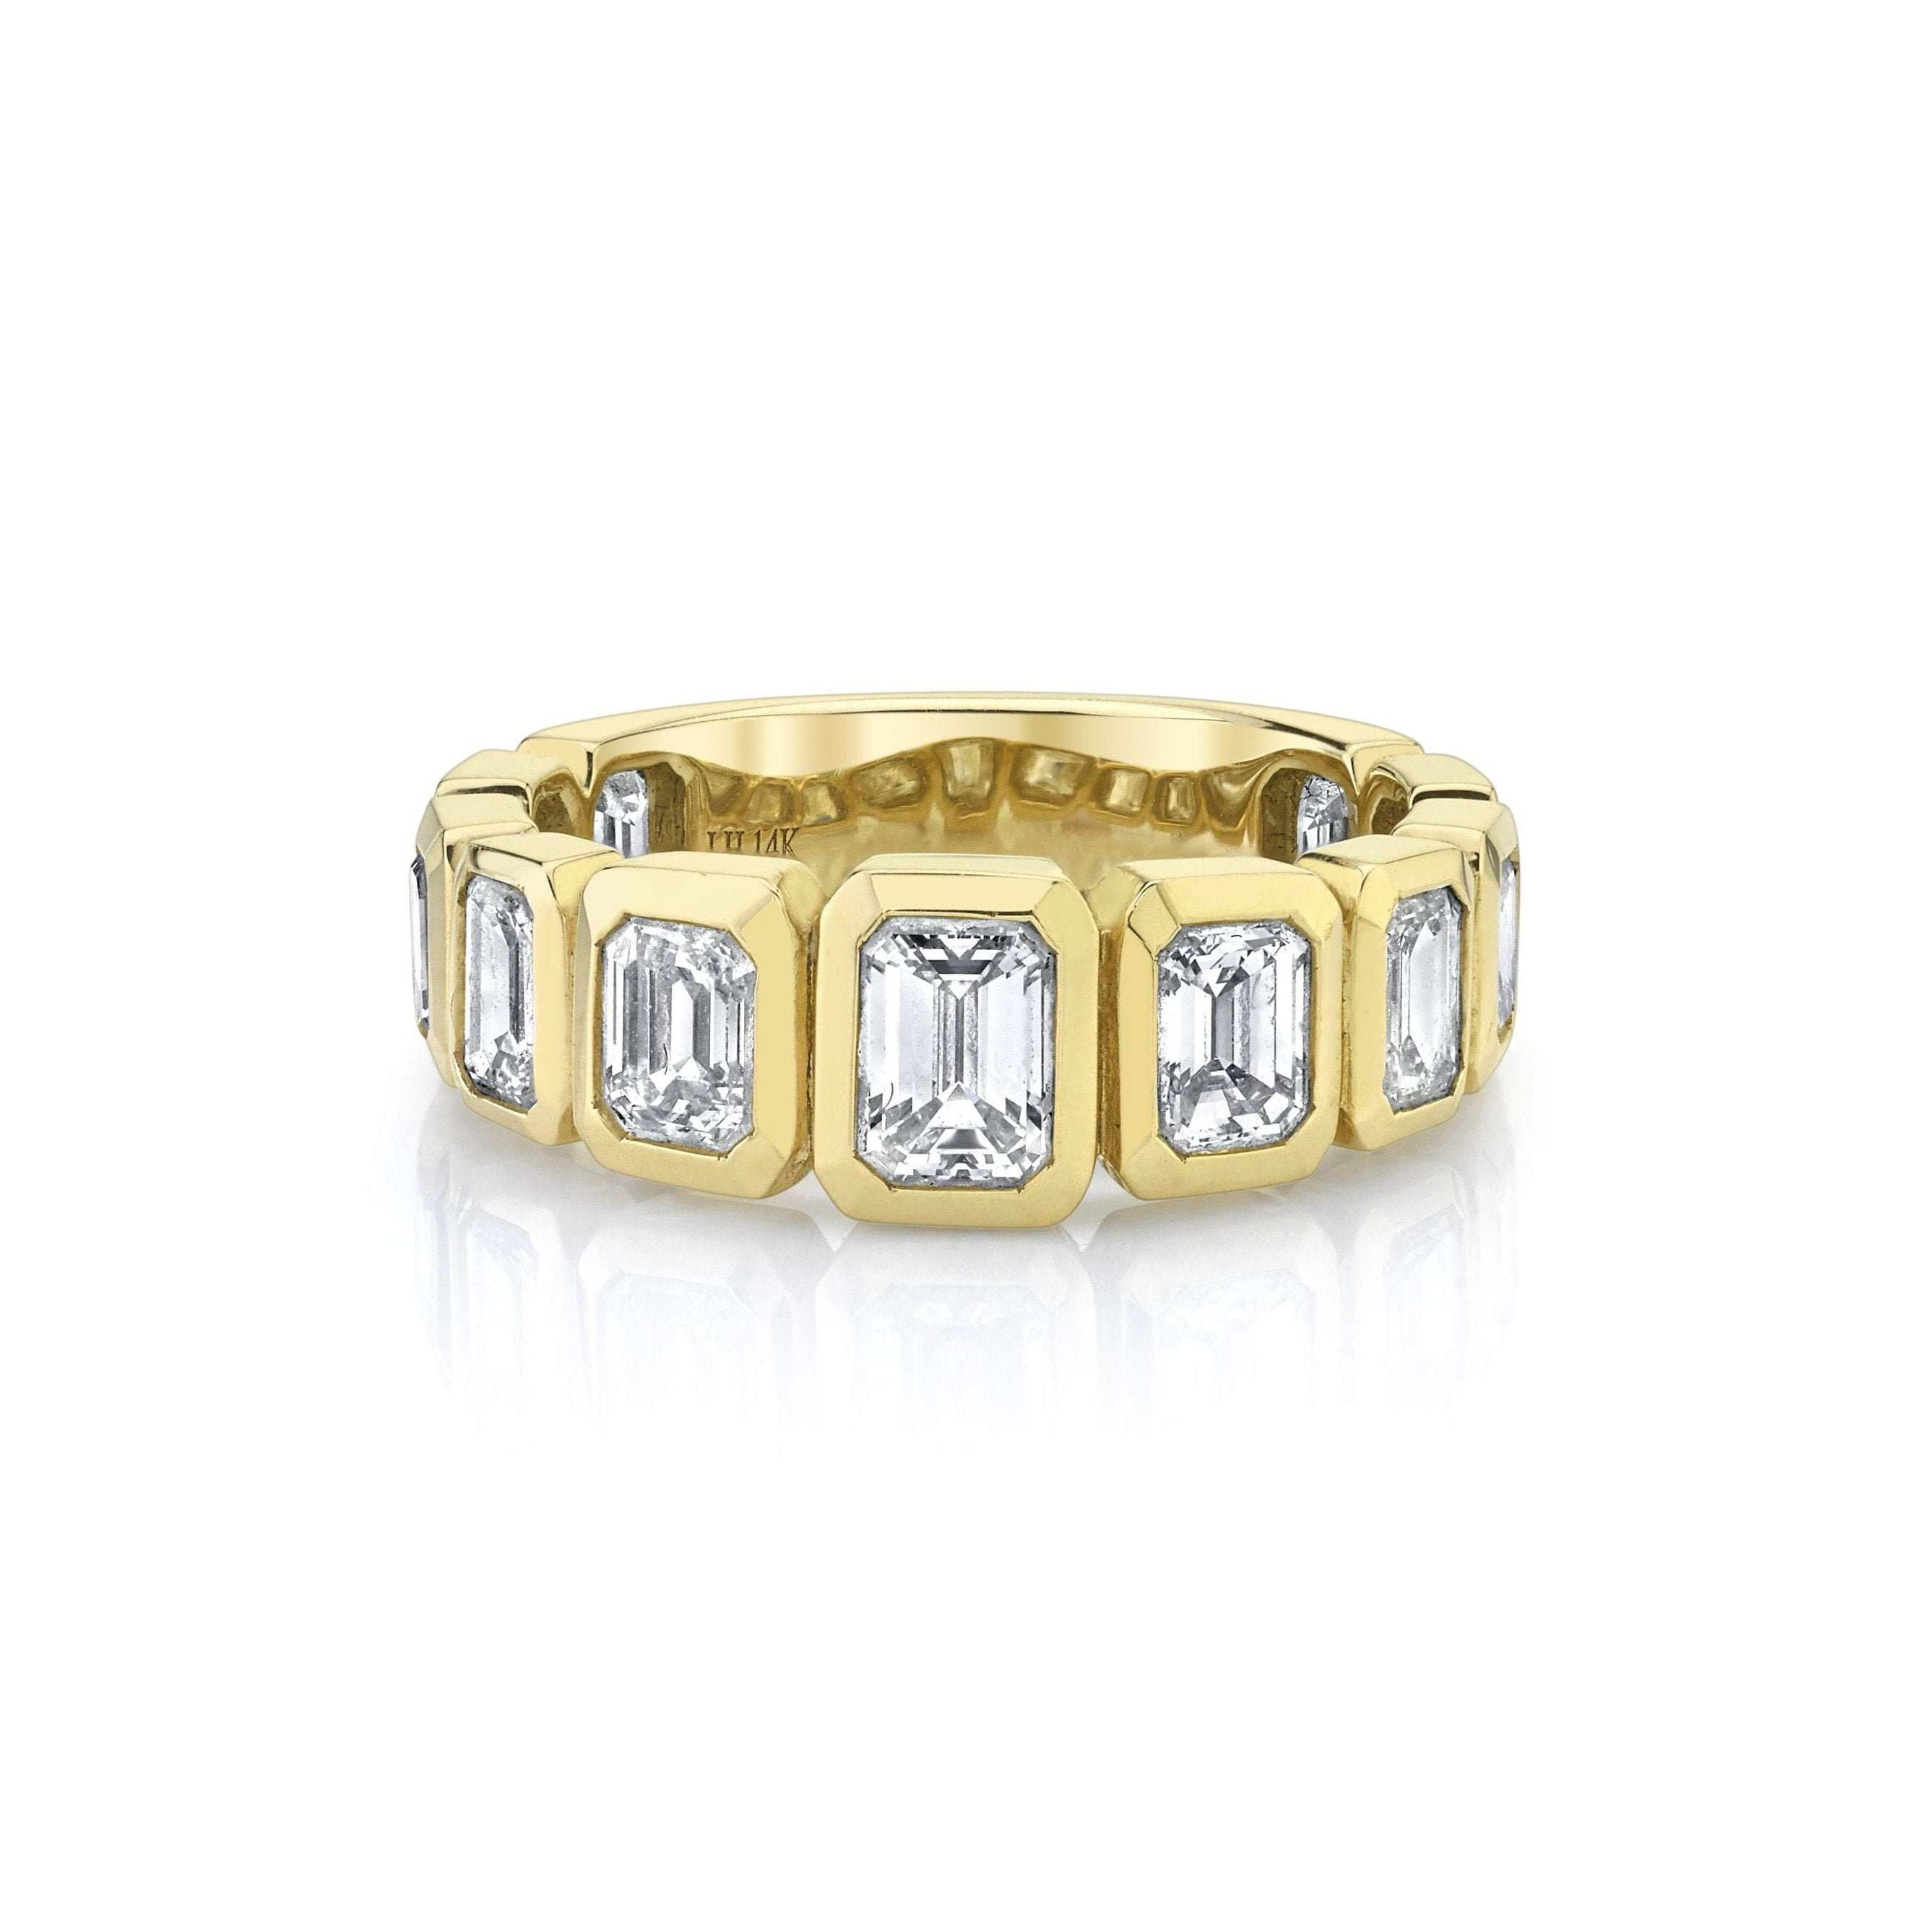 NEW! Graduated Emerald Cut Diamond Band